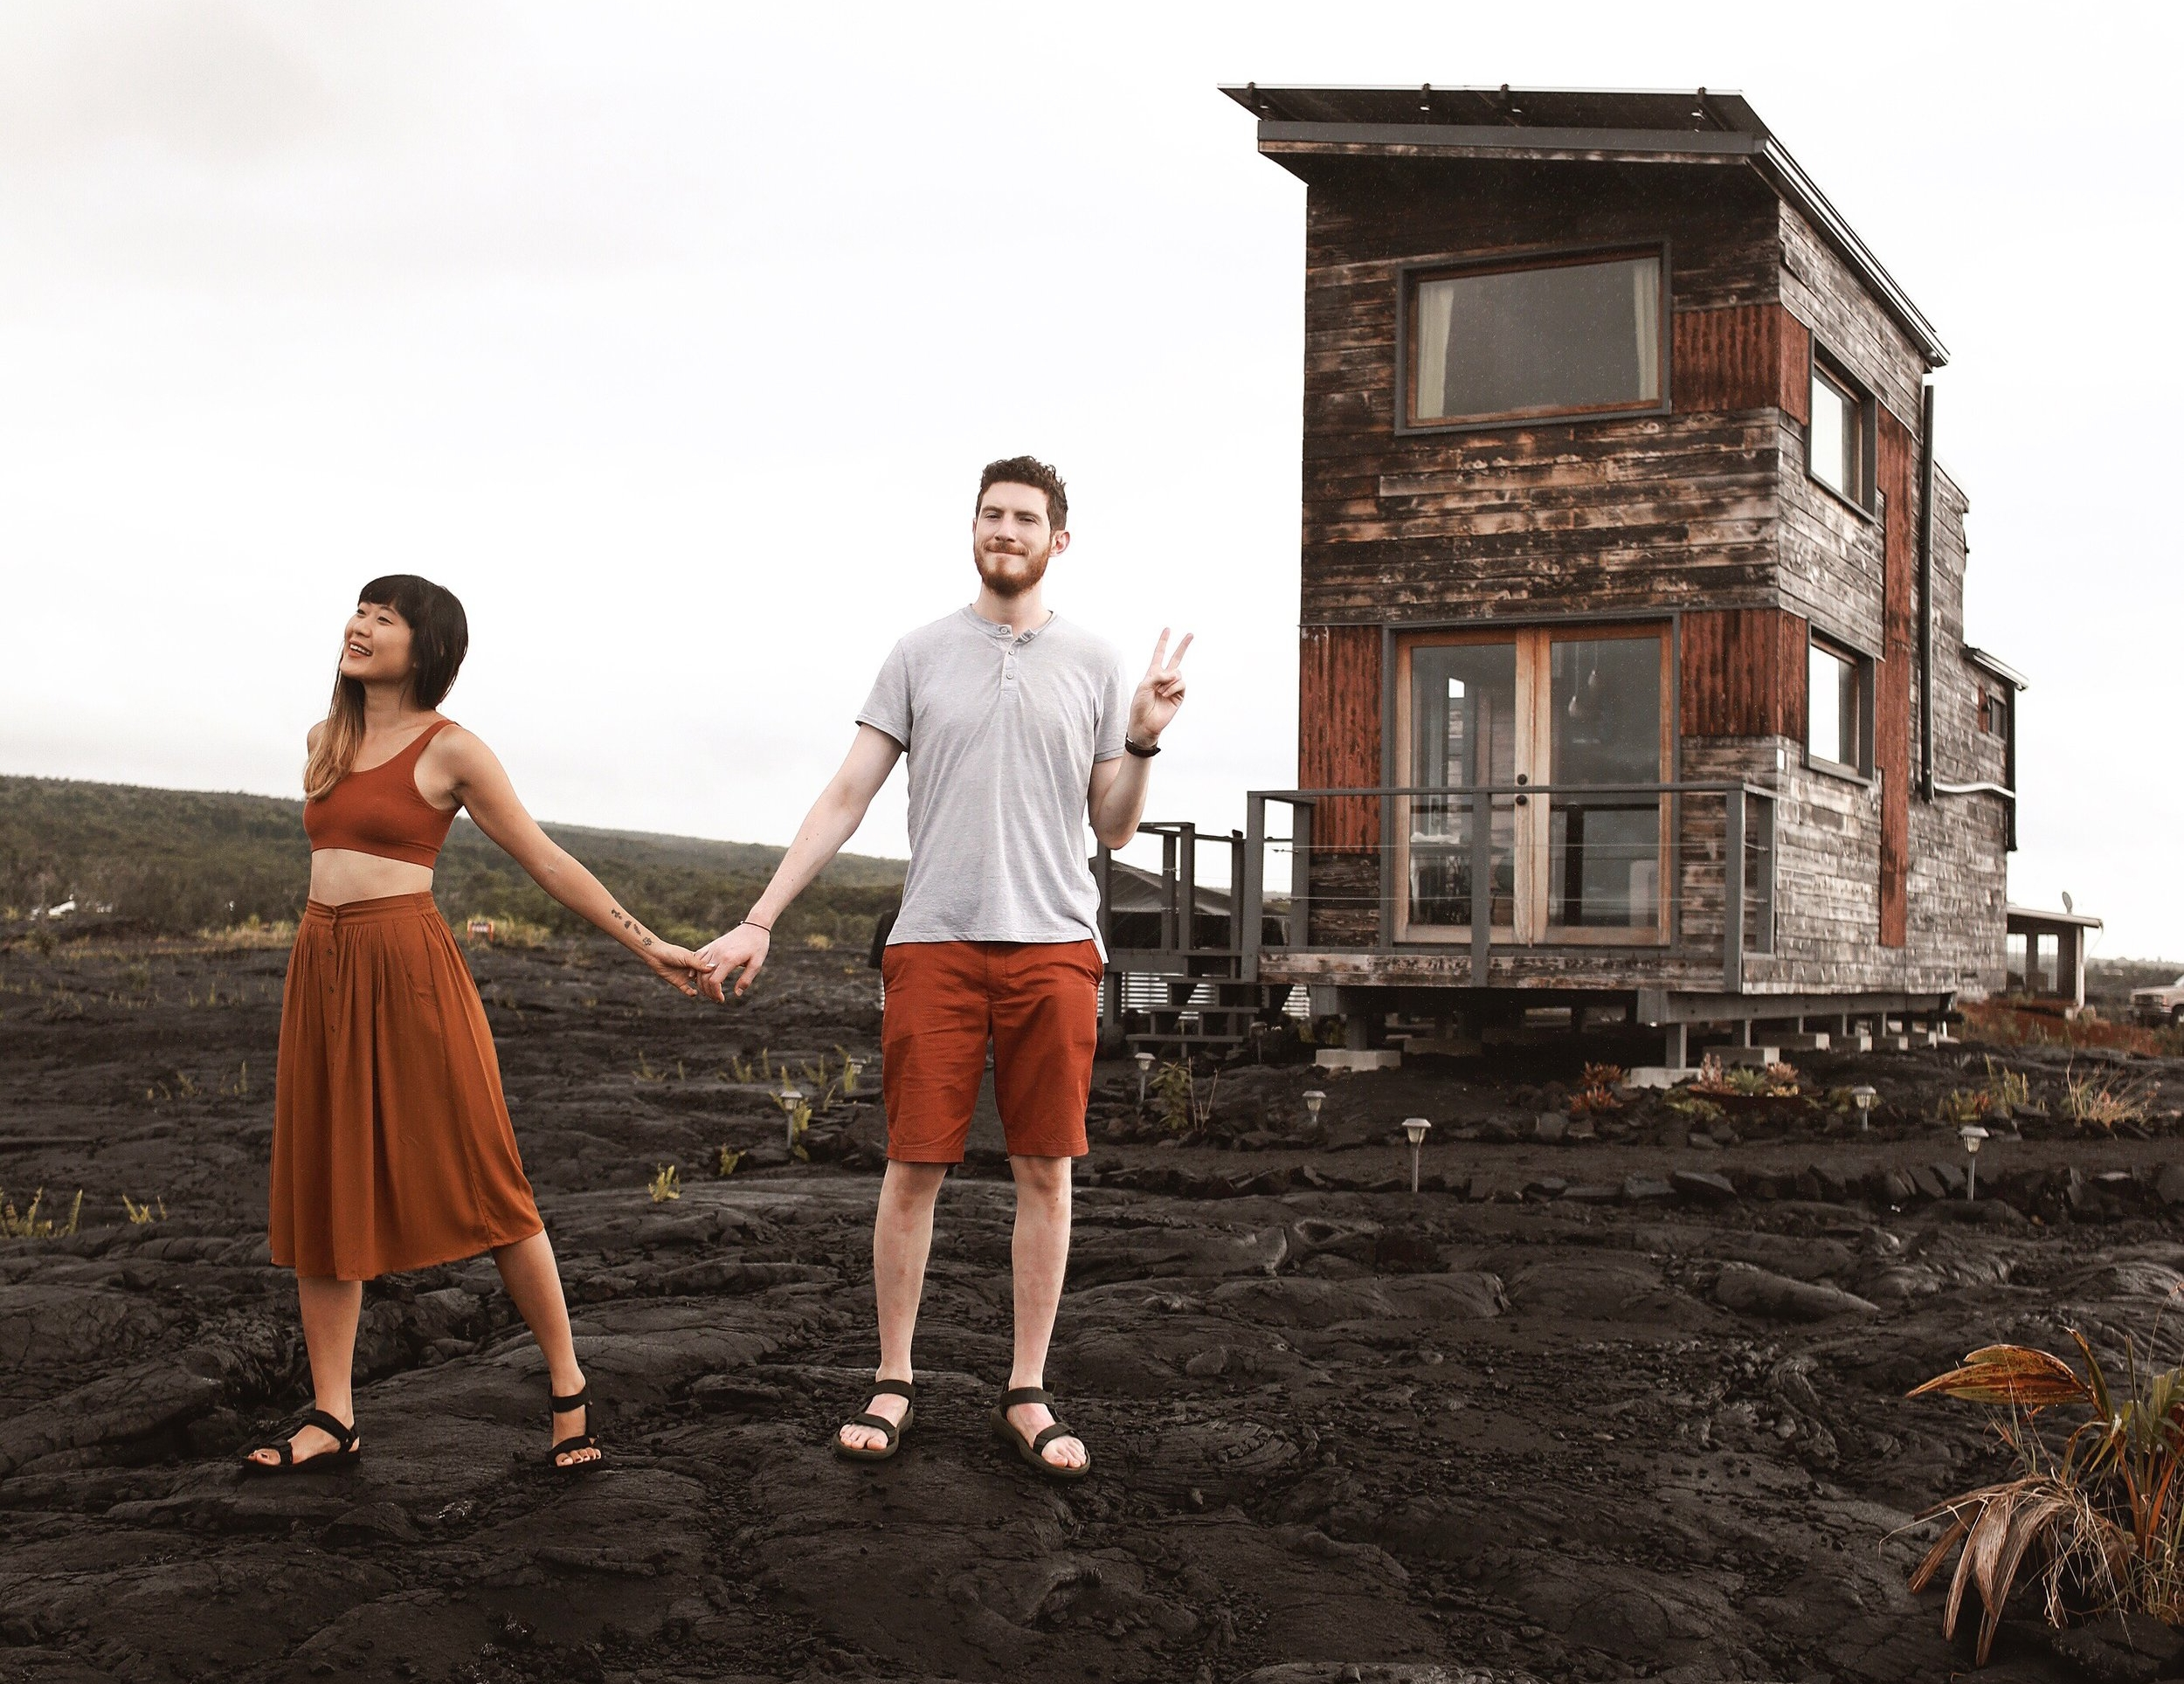 The+Big+Island,+Hawaii+_+Off-the-Grid+Airbnb+Adventures+_+Phoenix+House+Lava+Field+_+Where+to+Stay.jpeg